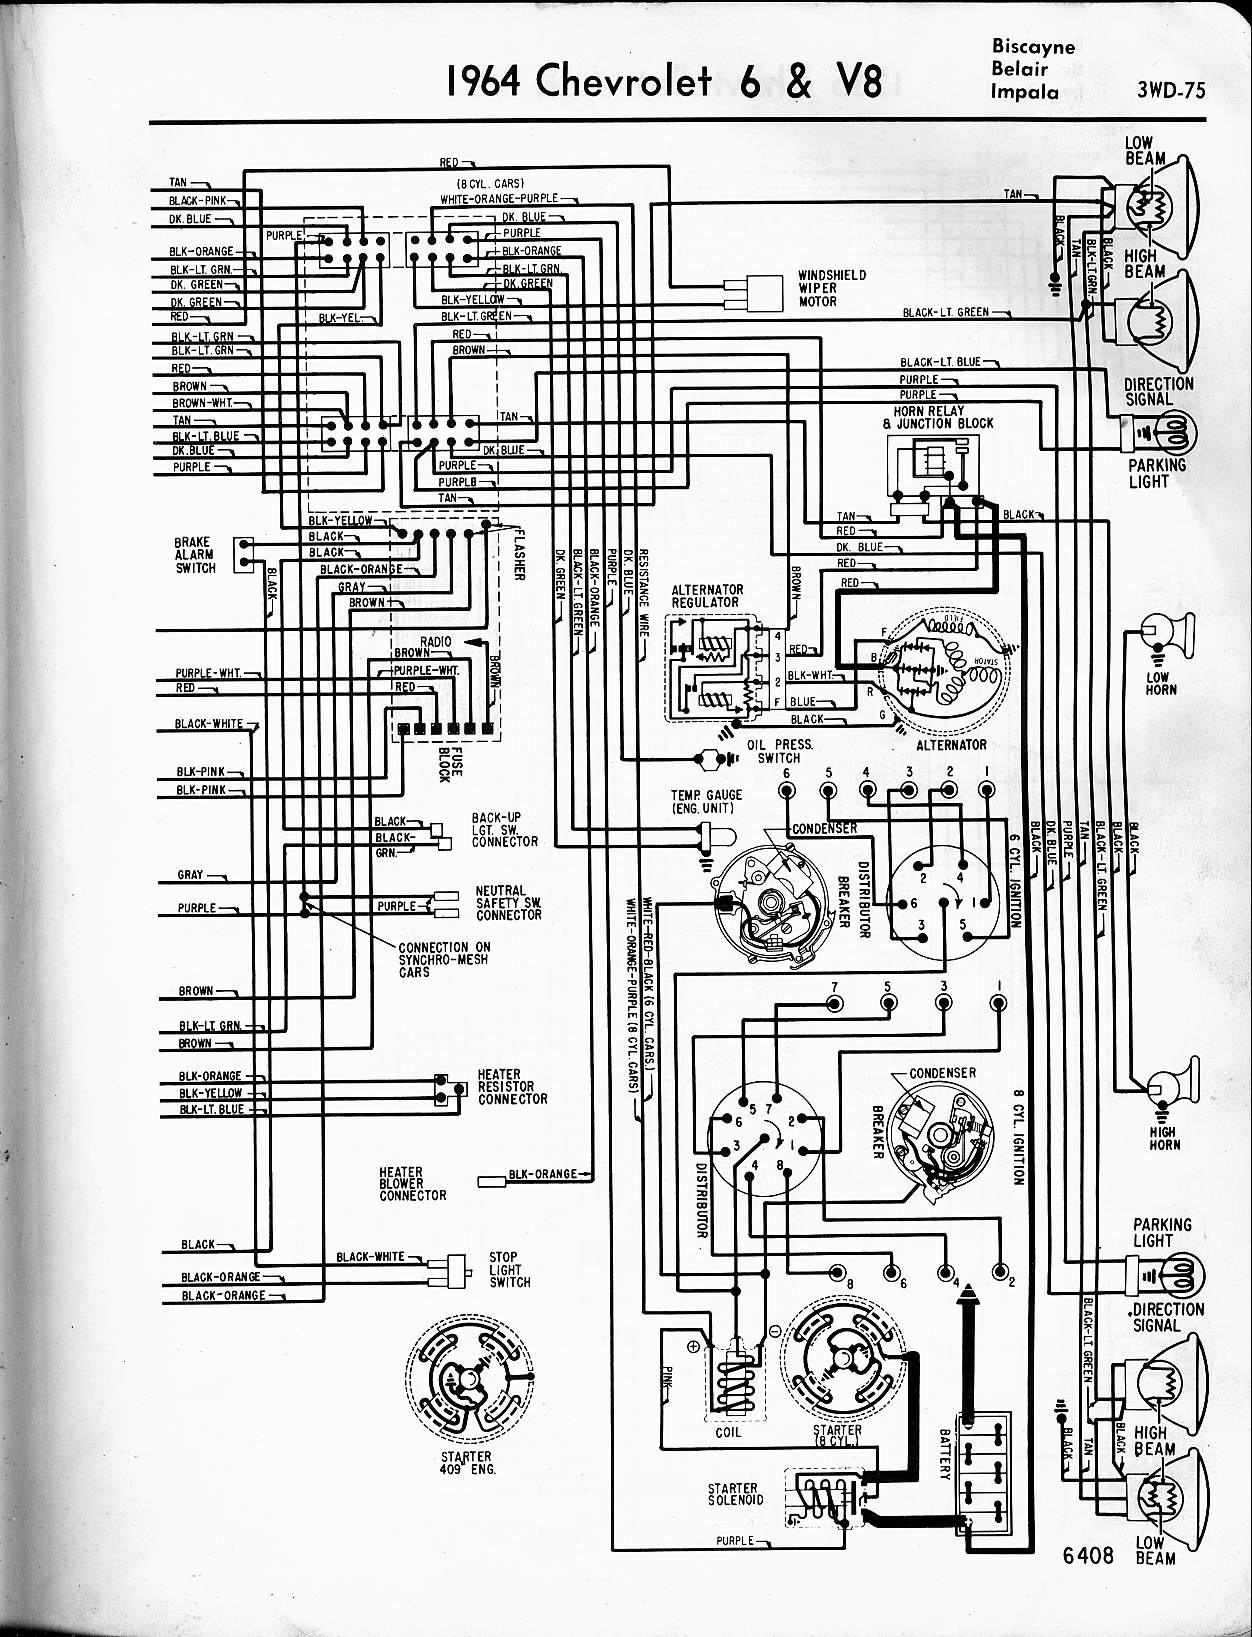 65 bel air wire diagram rcl dollheads uk \u202257 65 chevy wiring diagrams rh oldcarmanualproject com 64 bel air 68 bel air